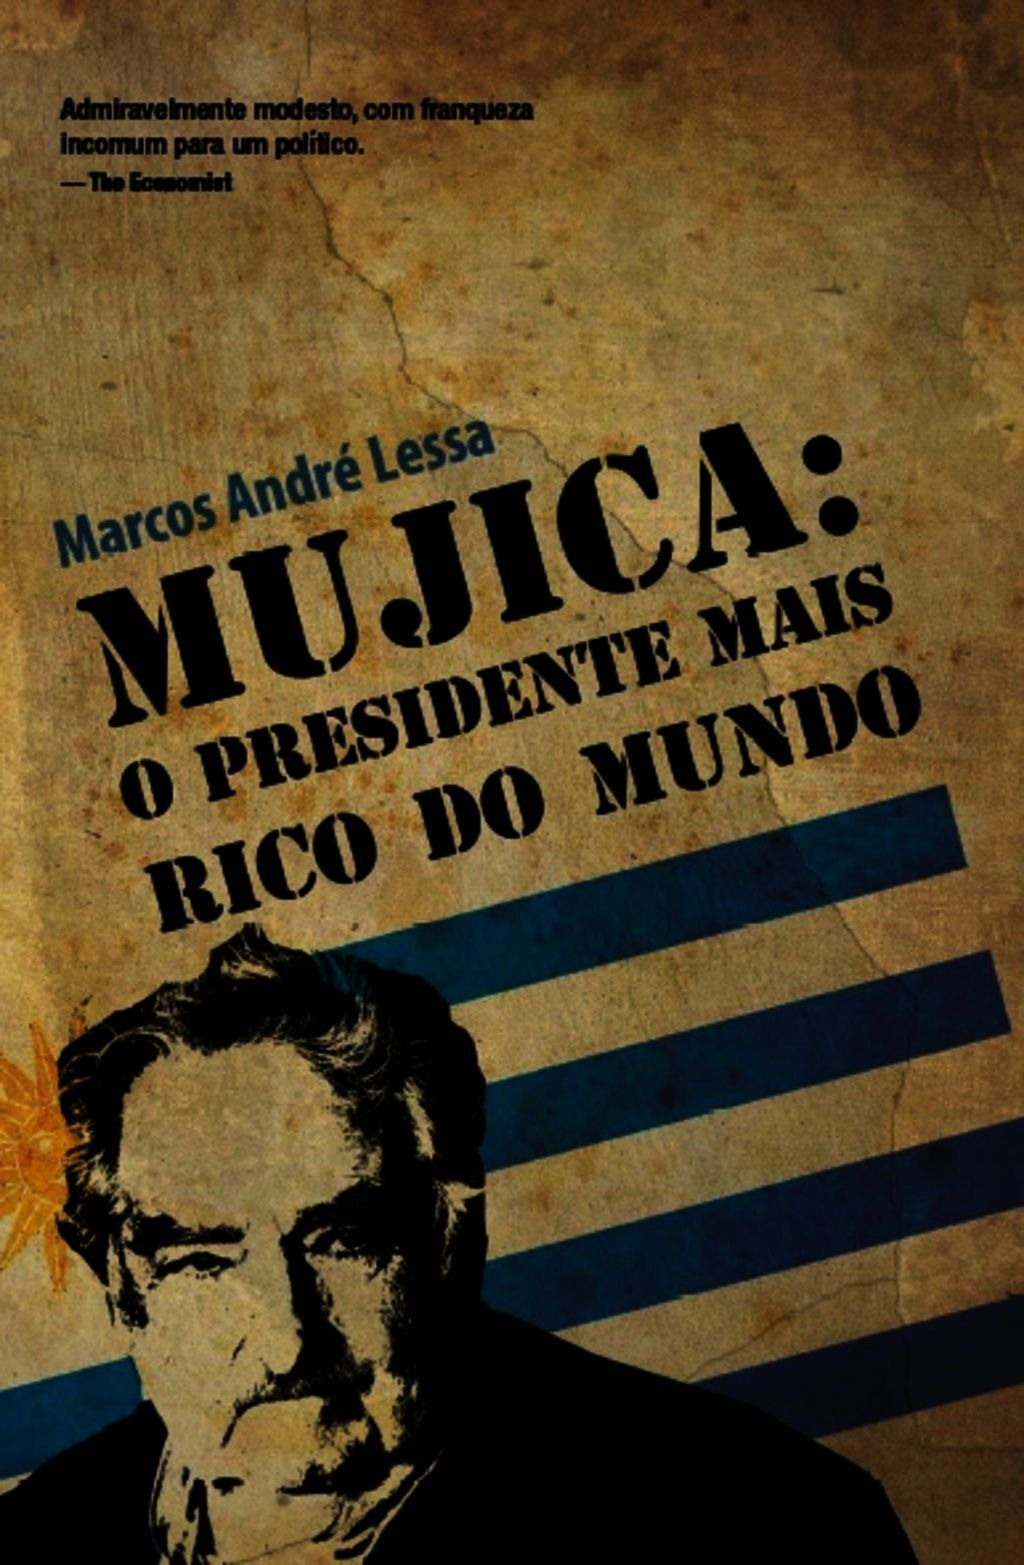 Mujica: O Presidente Mais Rico Do Mundo